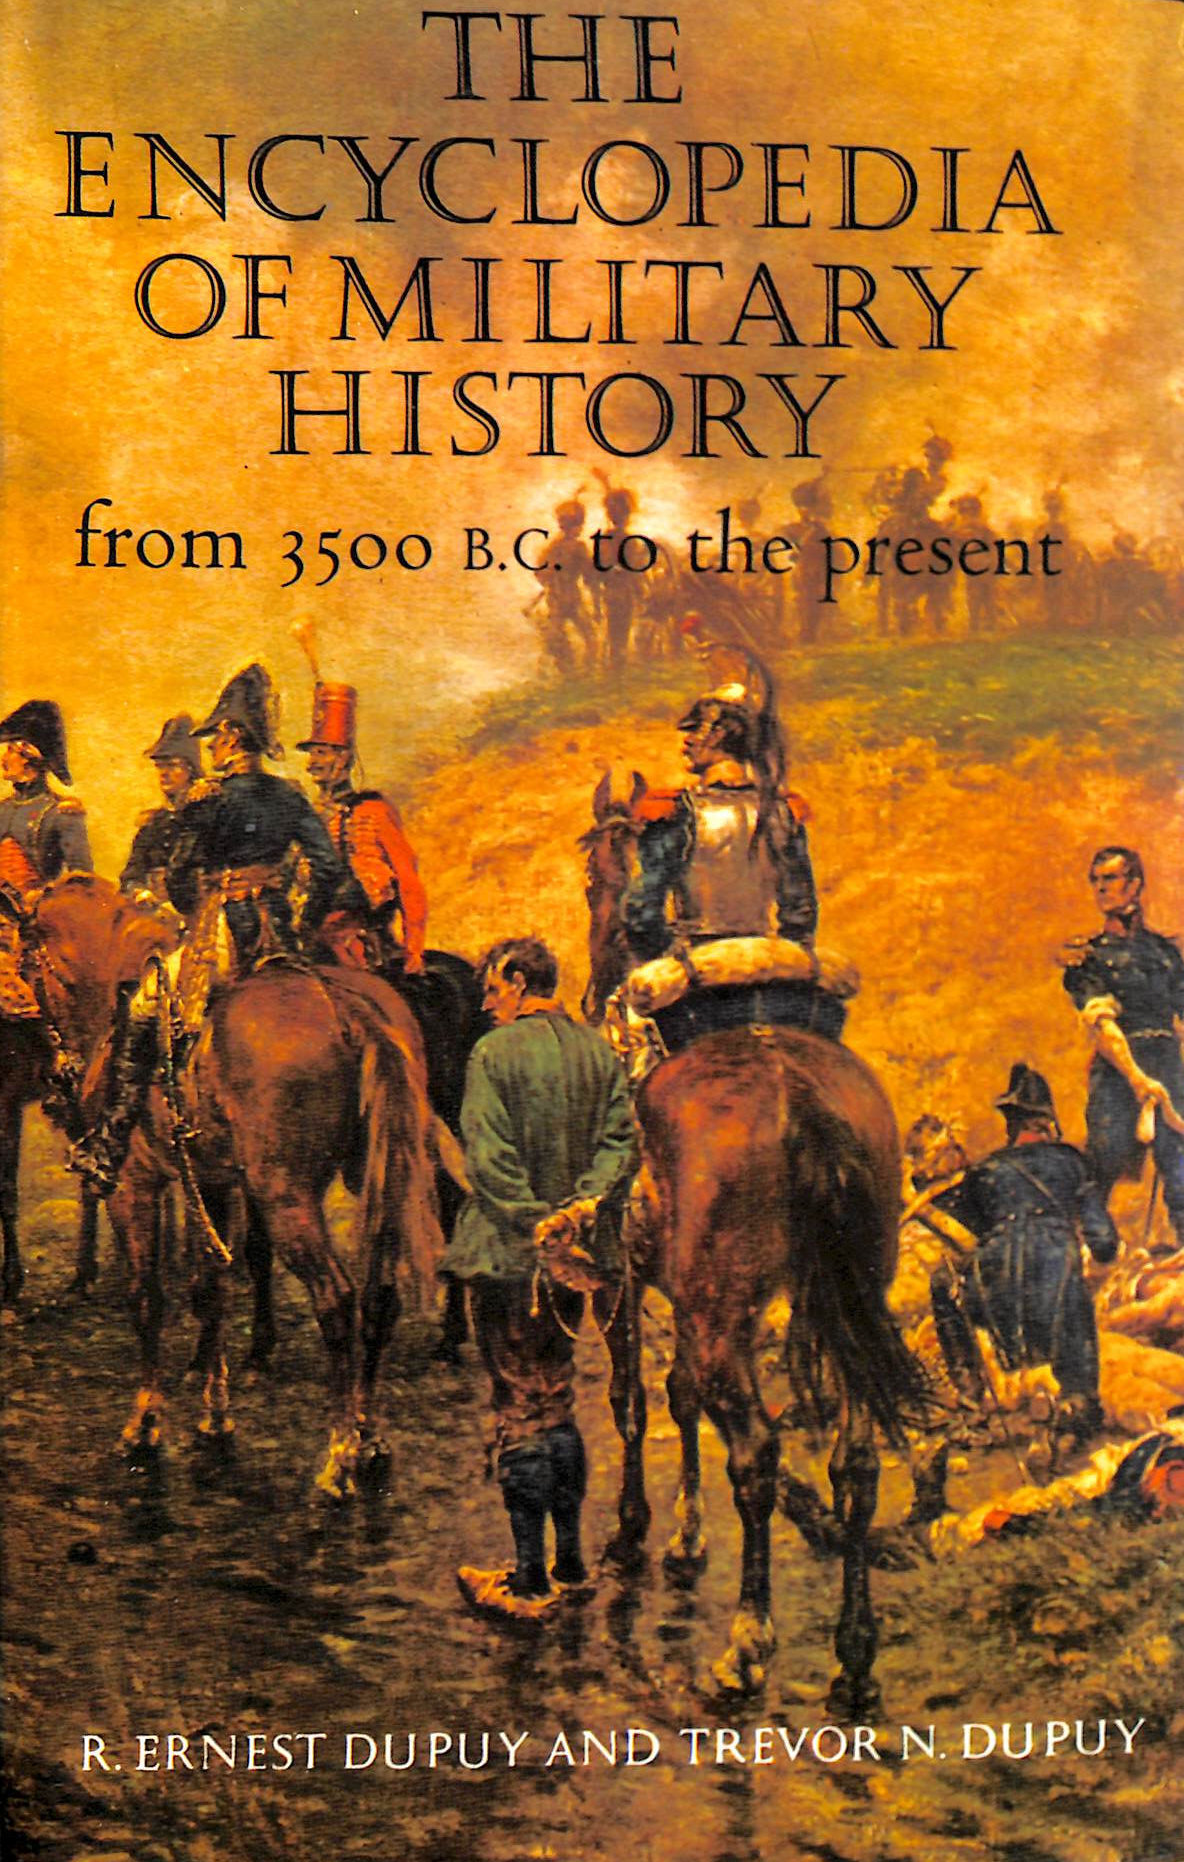 Image for The Encyclopedia Of Military History From 3500 B.C. To The Present, 2Nd Revised Edition By Richard Ernest Dupuy (1986-05-05)